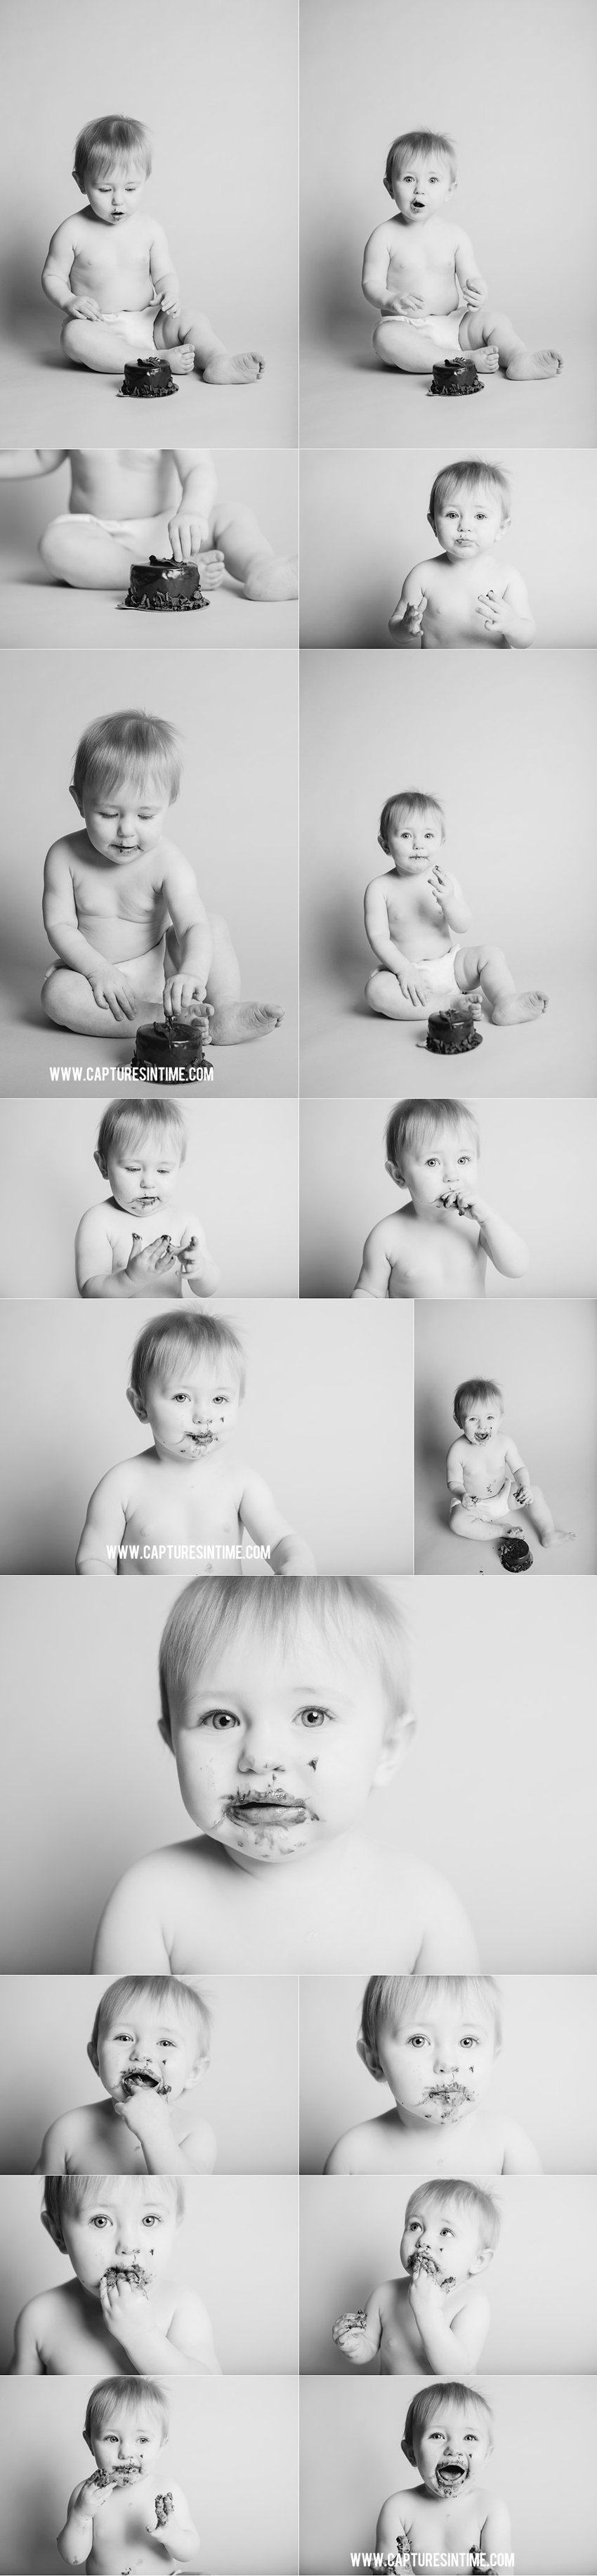 cake smash black and white college with lots cake on baby's face